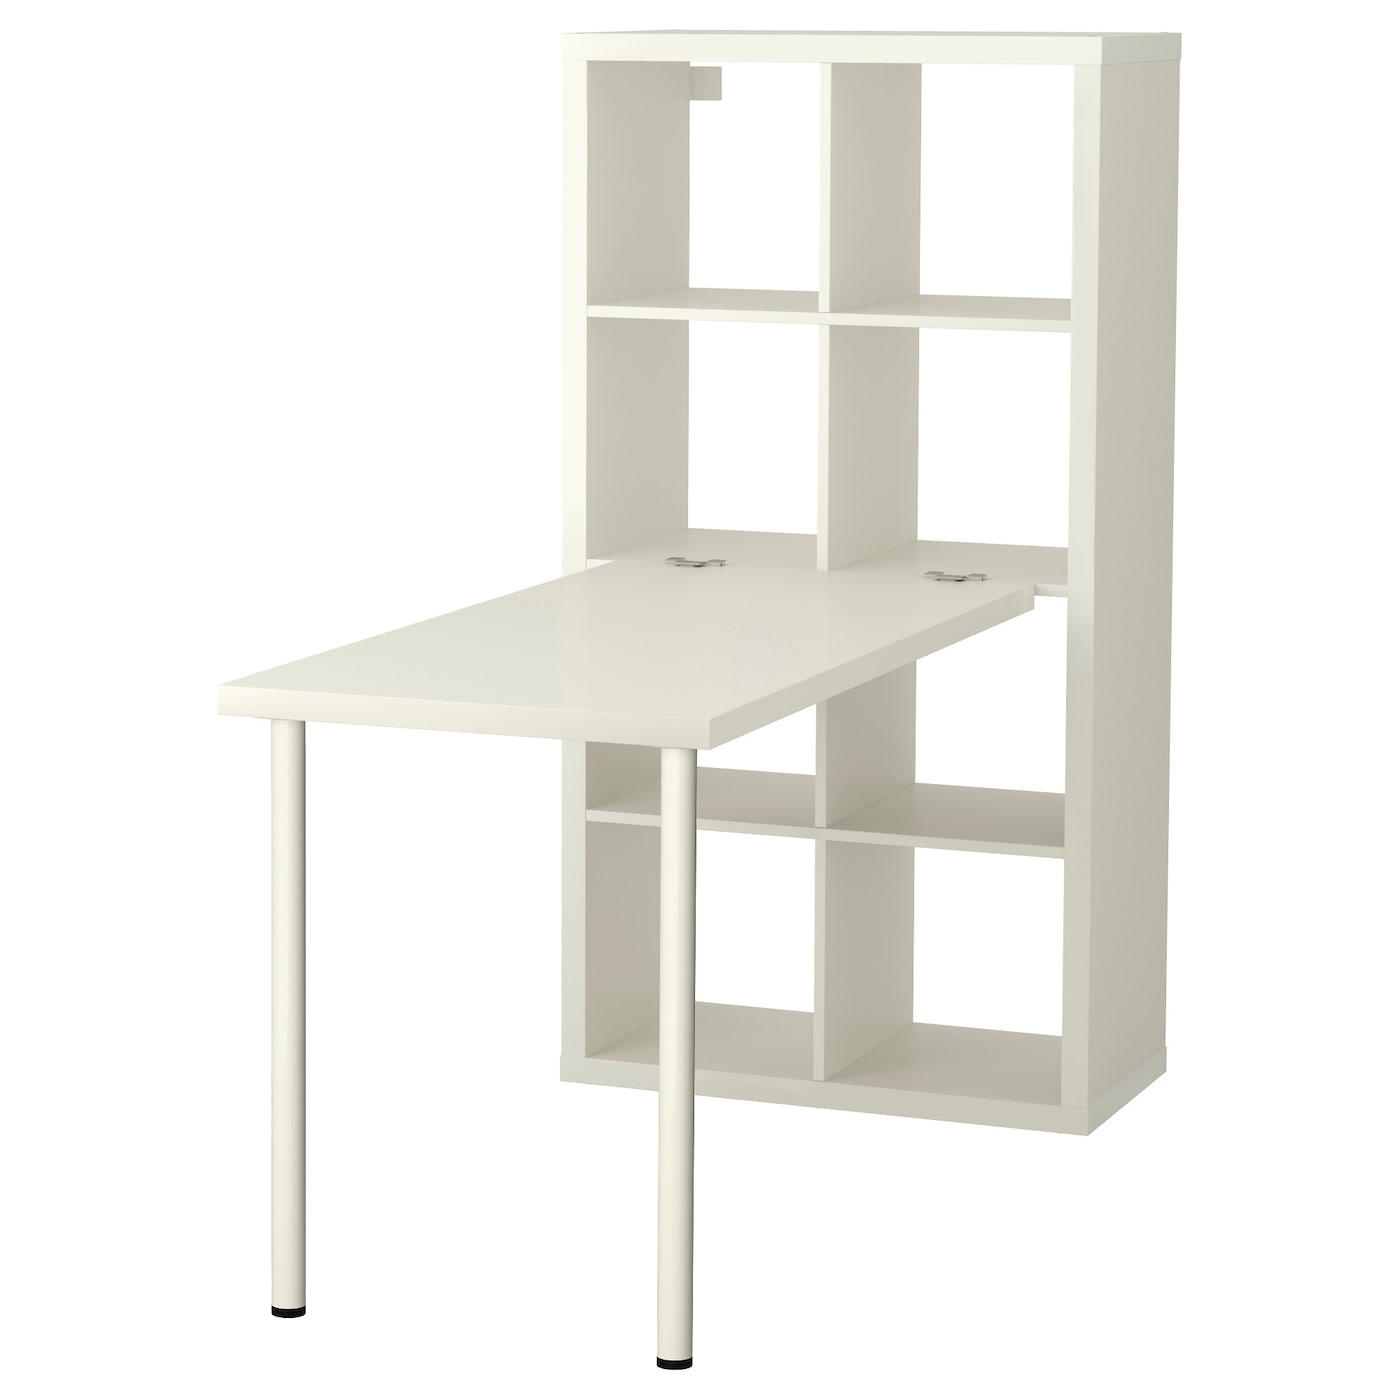 Kallax desk combination white 77 x 147 cm ikea - Mobile computer ikea ...